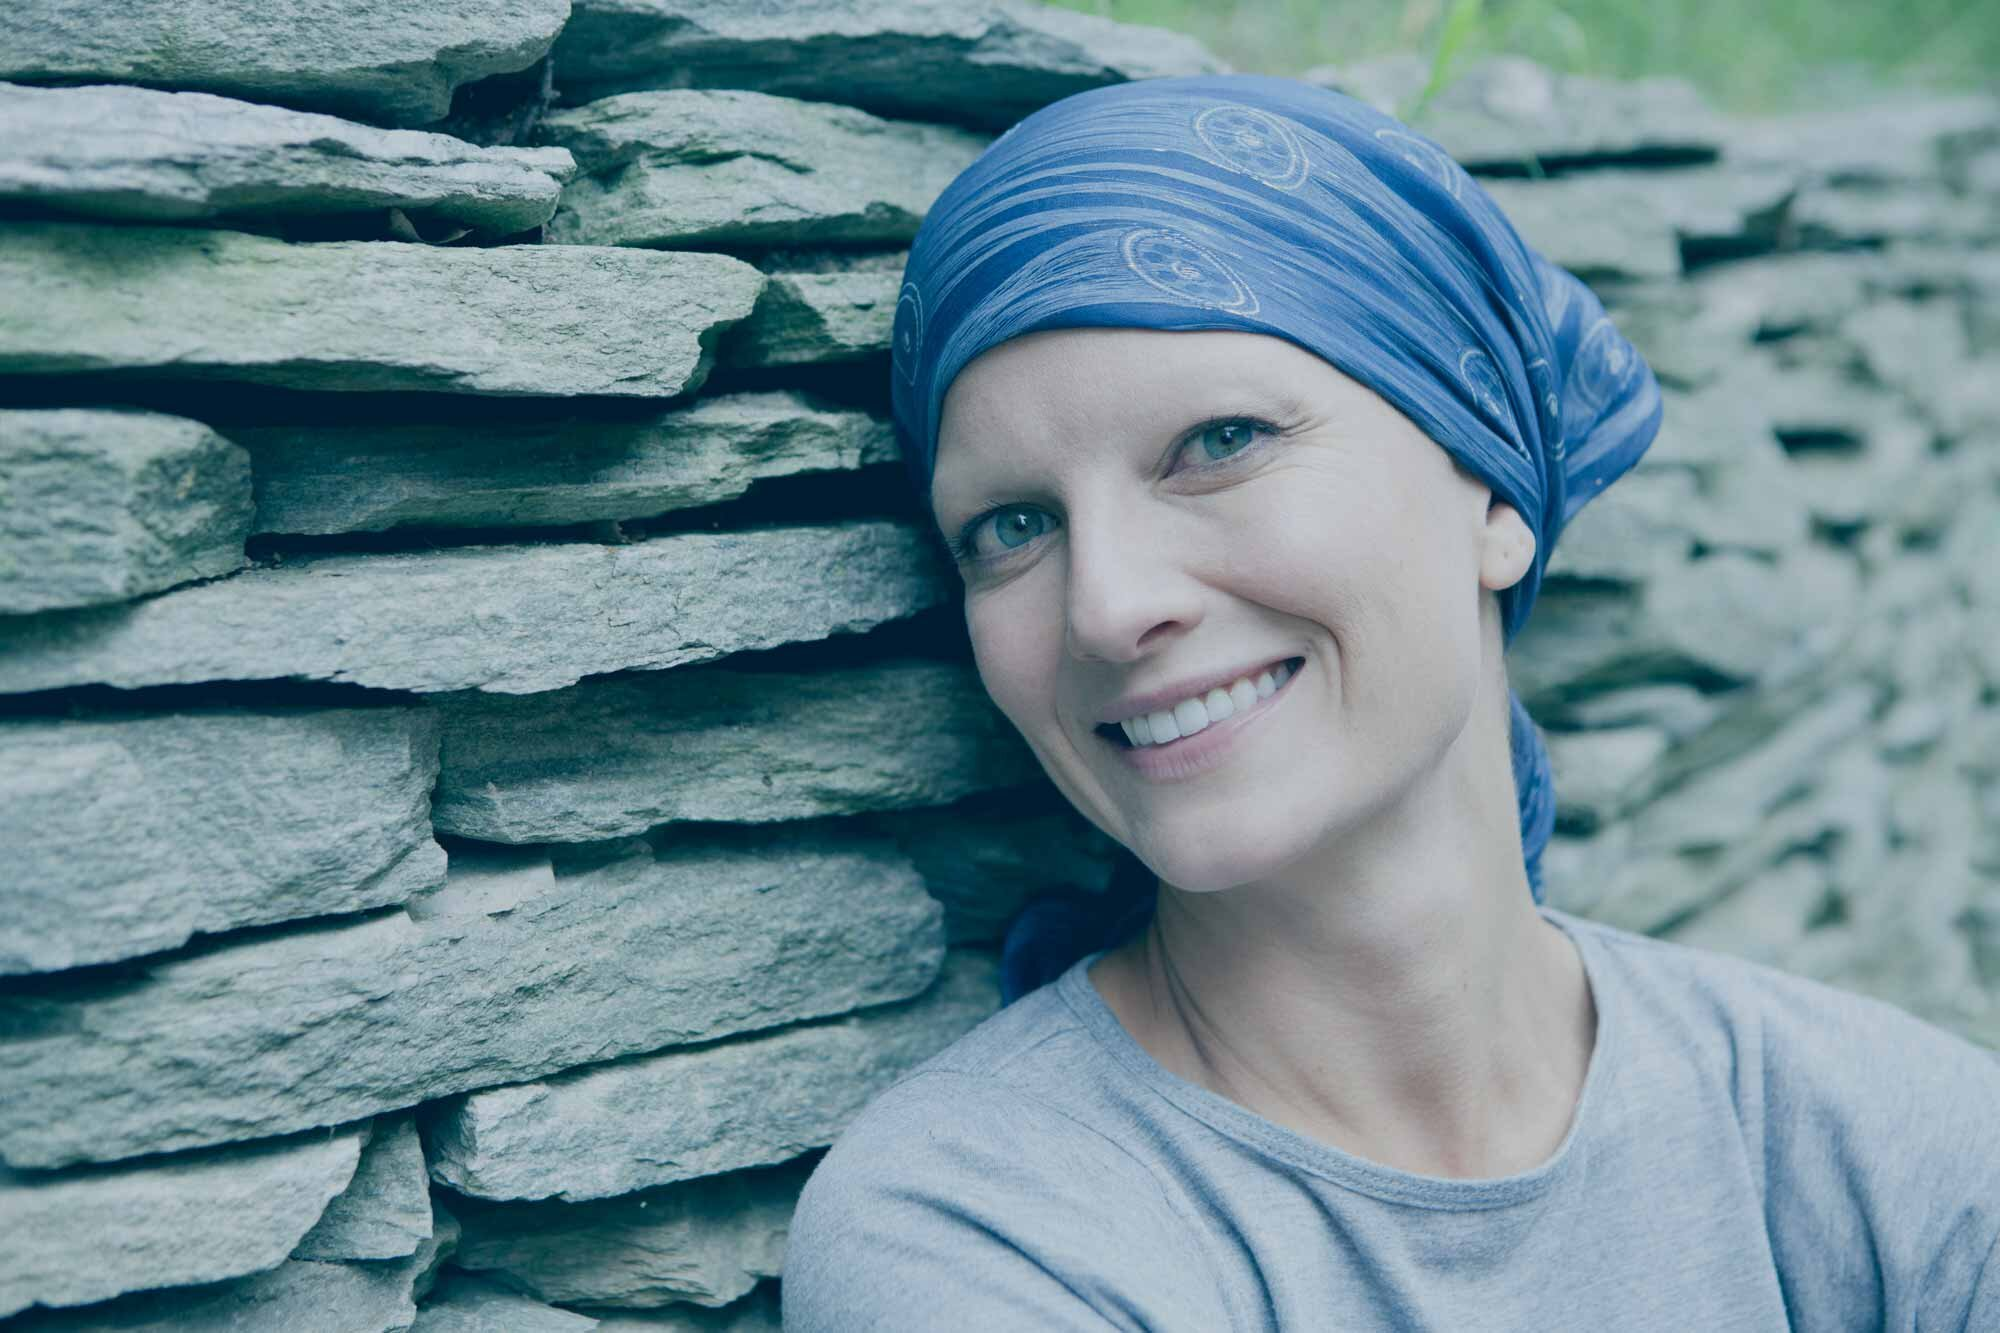 Smiling-Woman-with-Cancer-v1.jpg